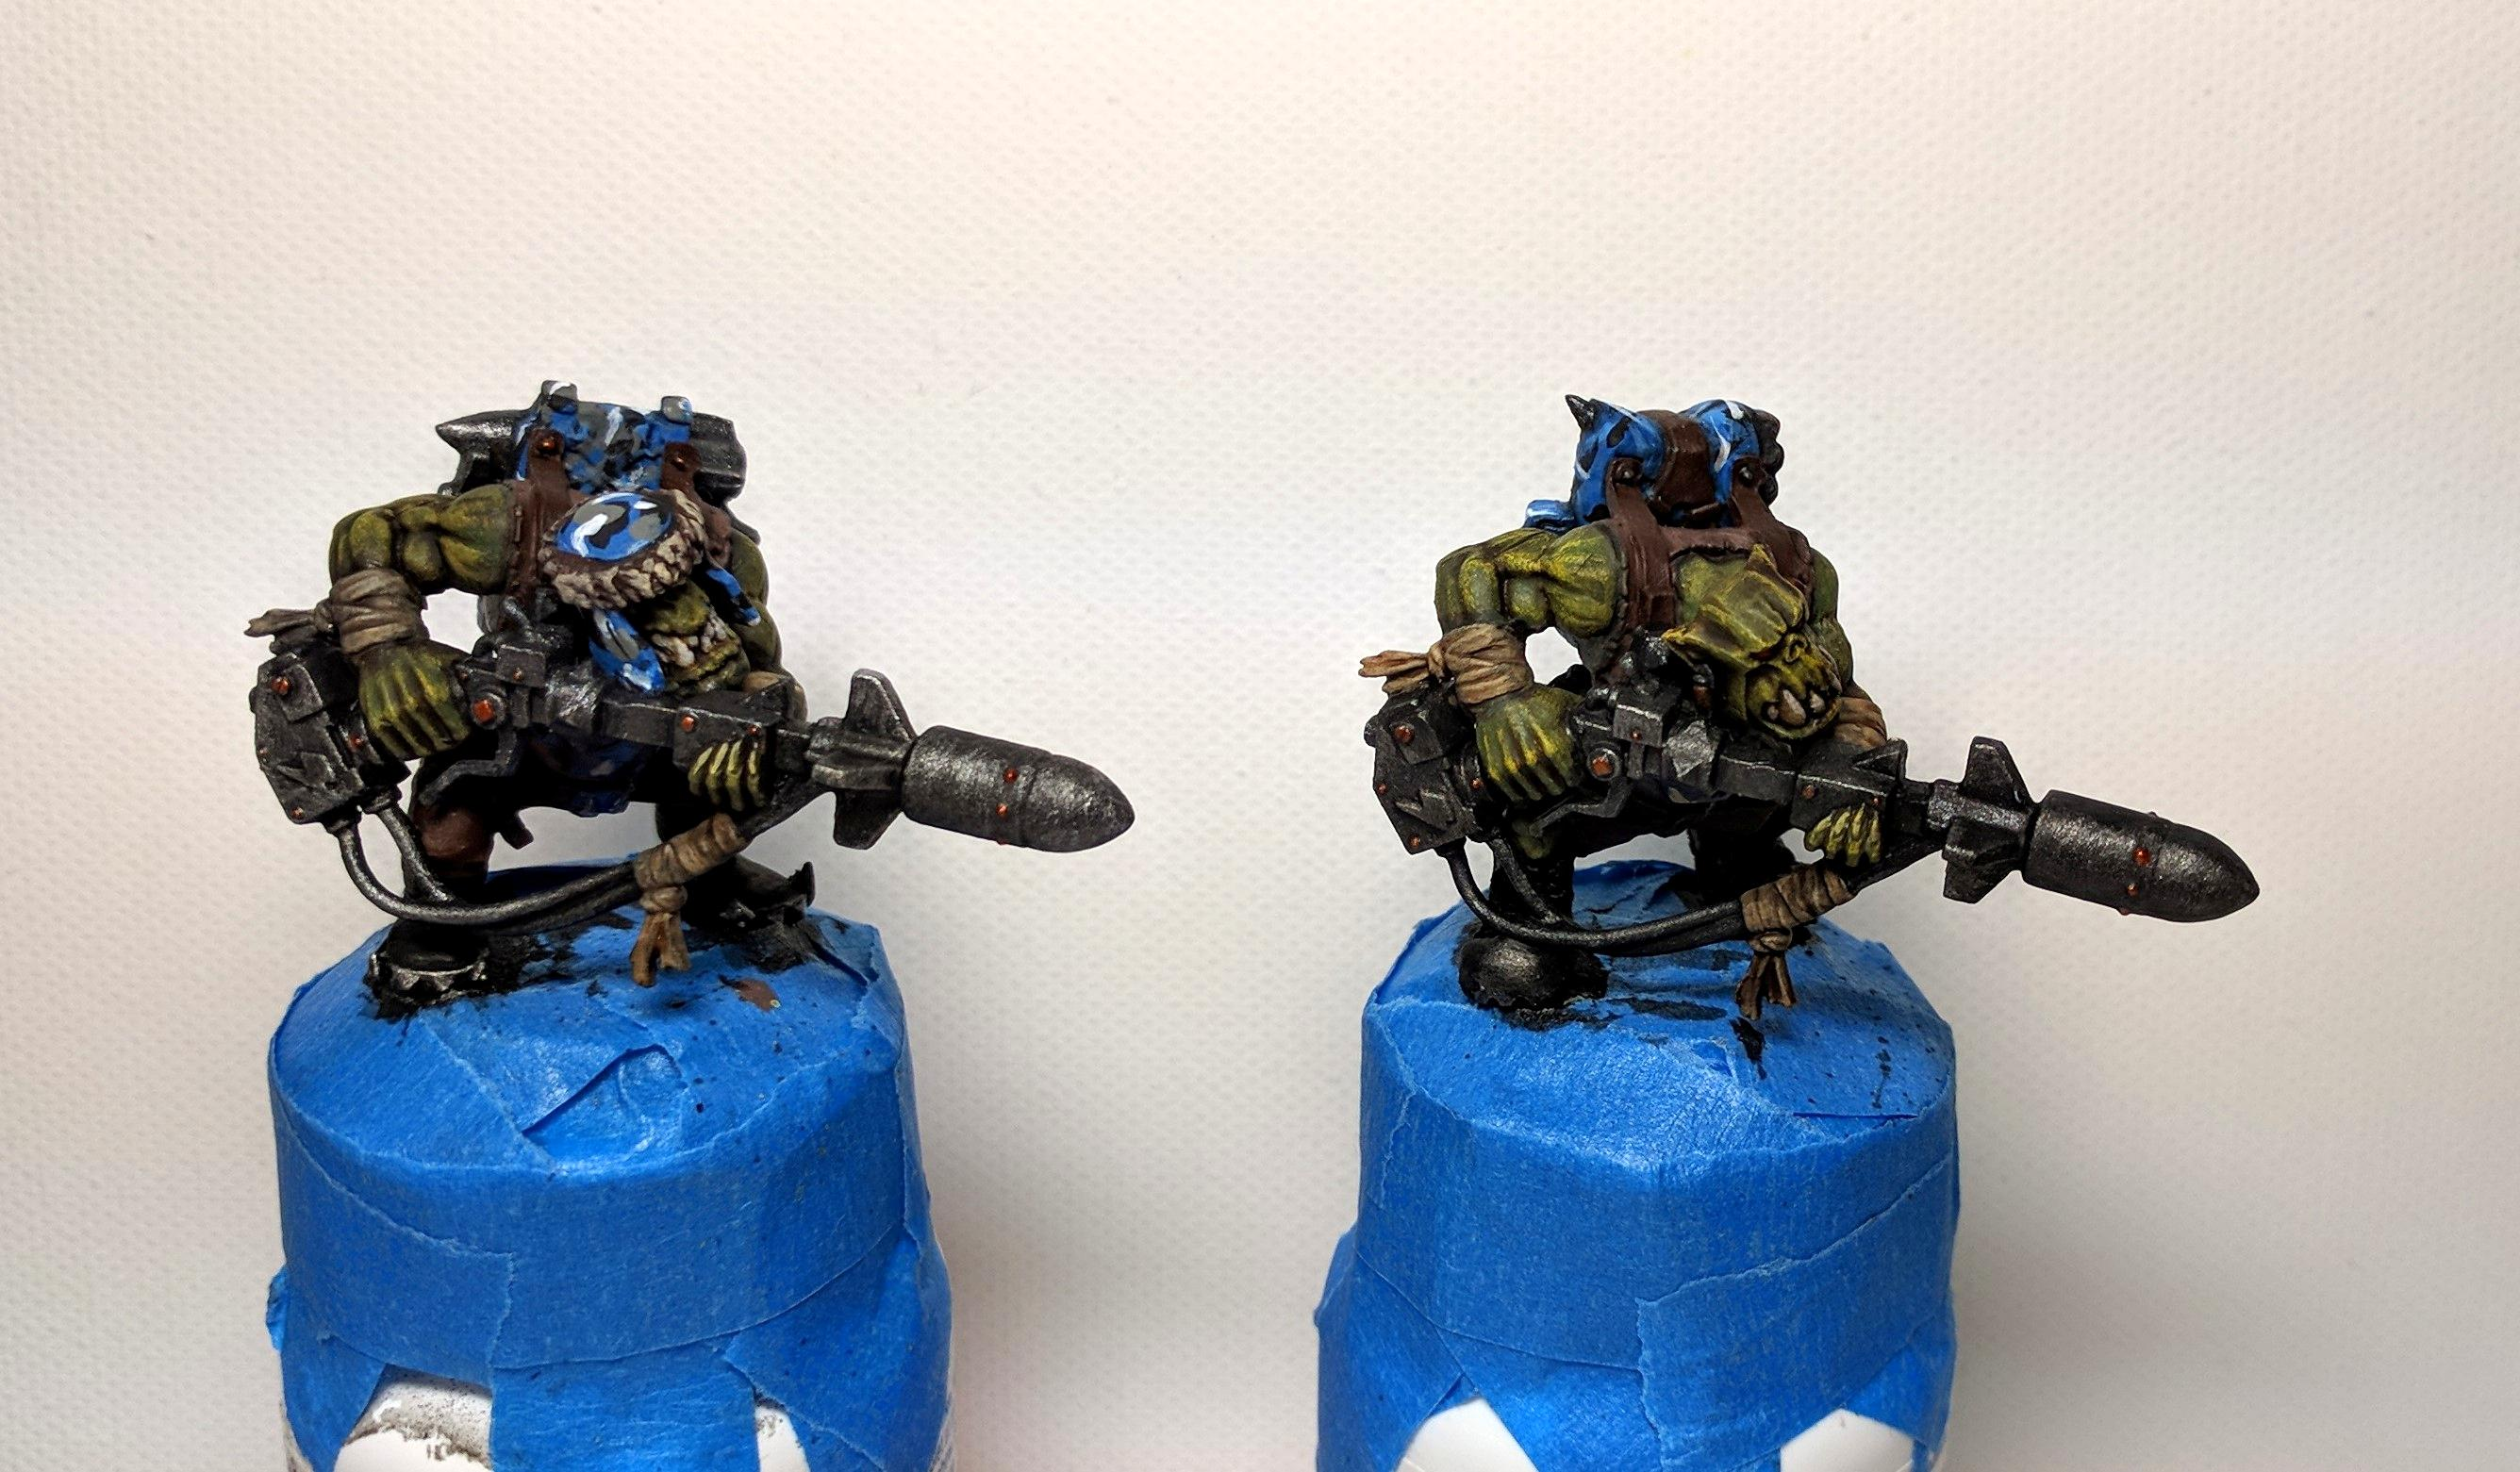 Camouflage, Kommando, Kommandoes, Orks, Rokkits, Work In Progress